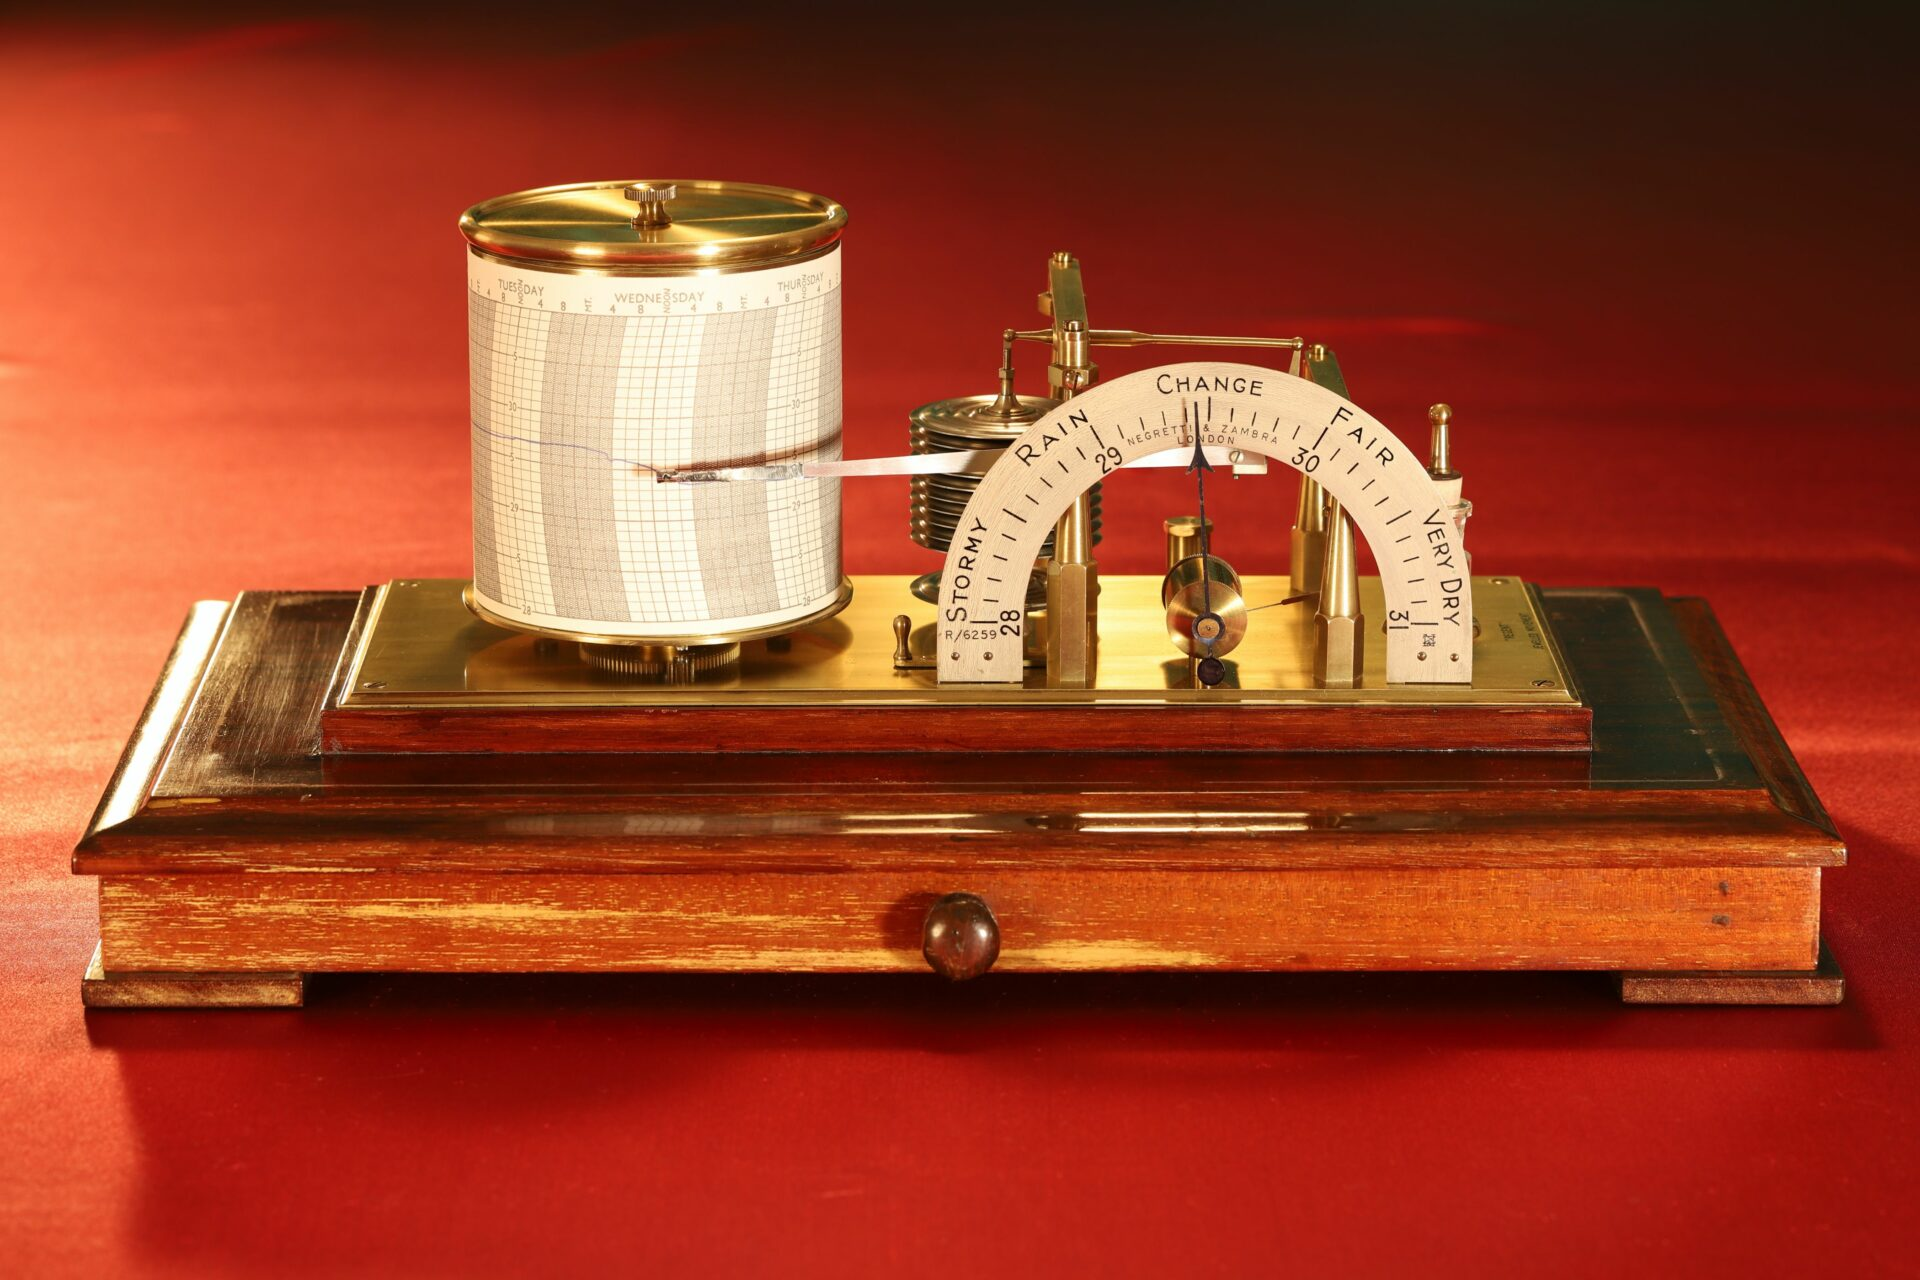 Image of Negretti & Zambra Regent Barograph No R6259 c1929 without case lid taken from front